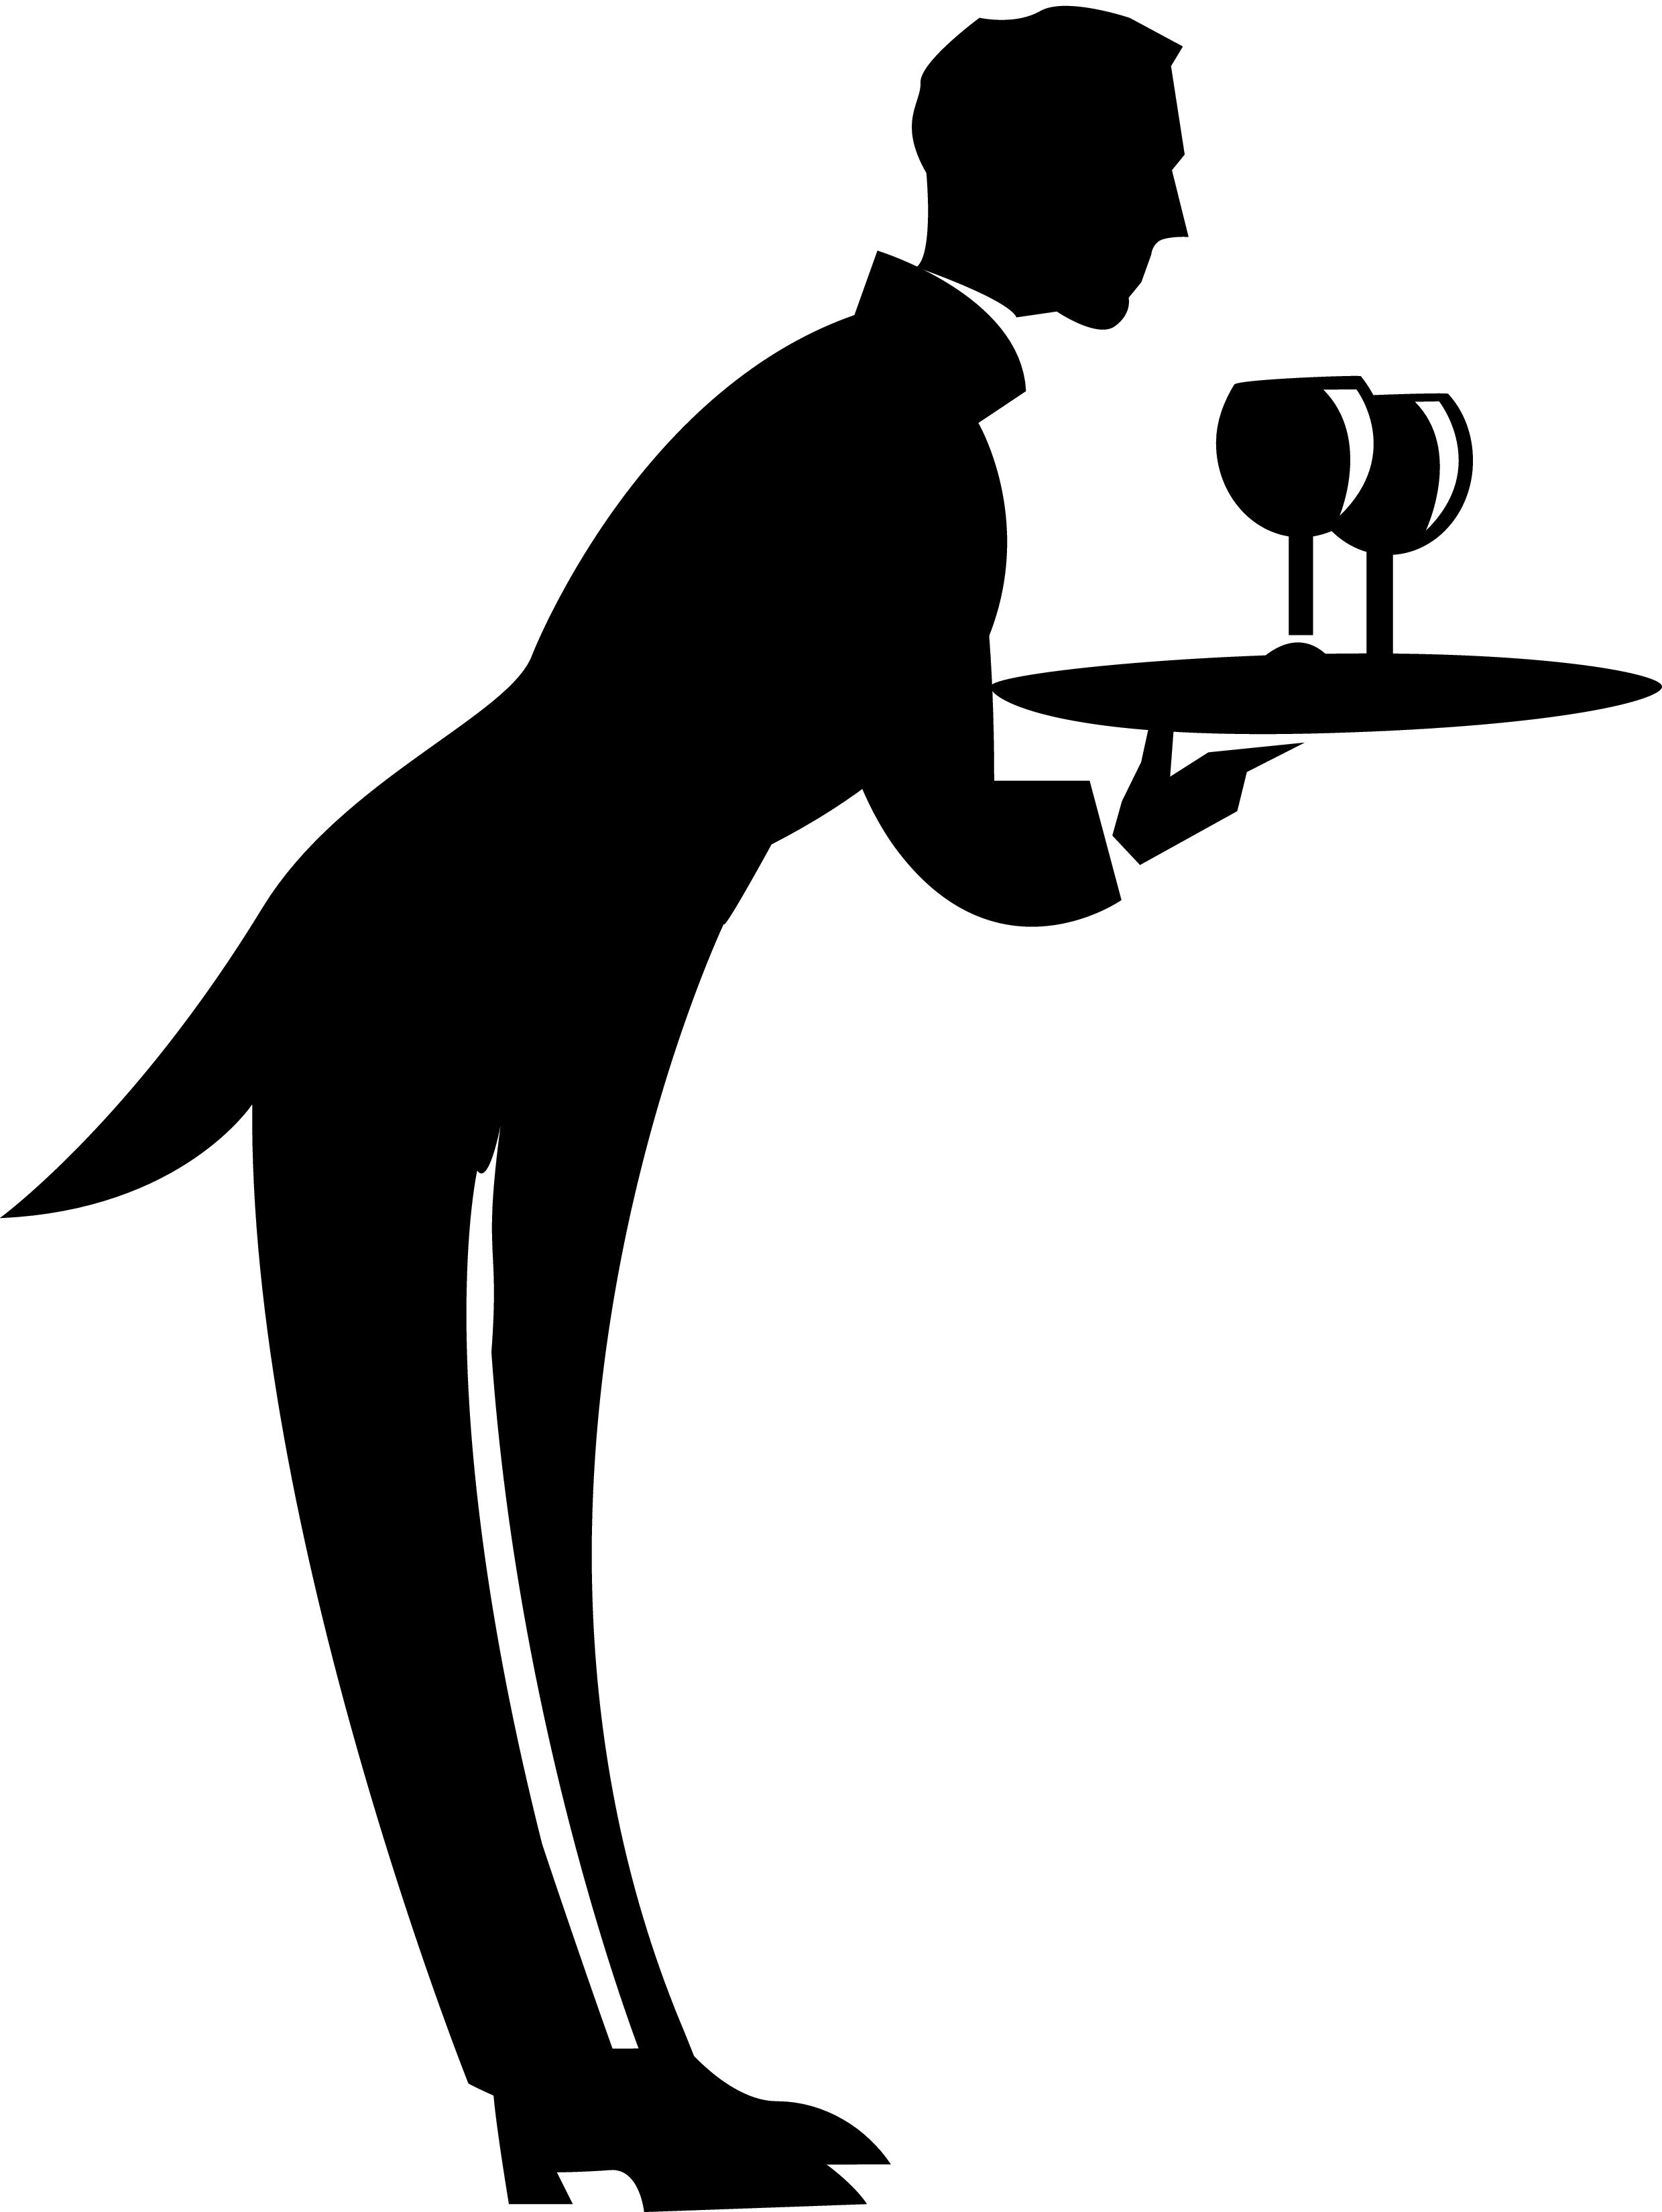 Waiter Silhouette at GetDrawings.com.